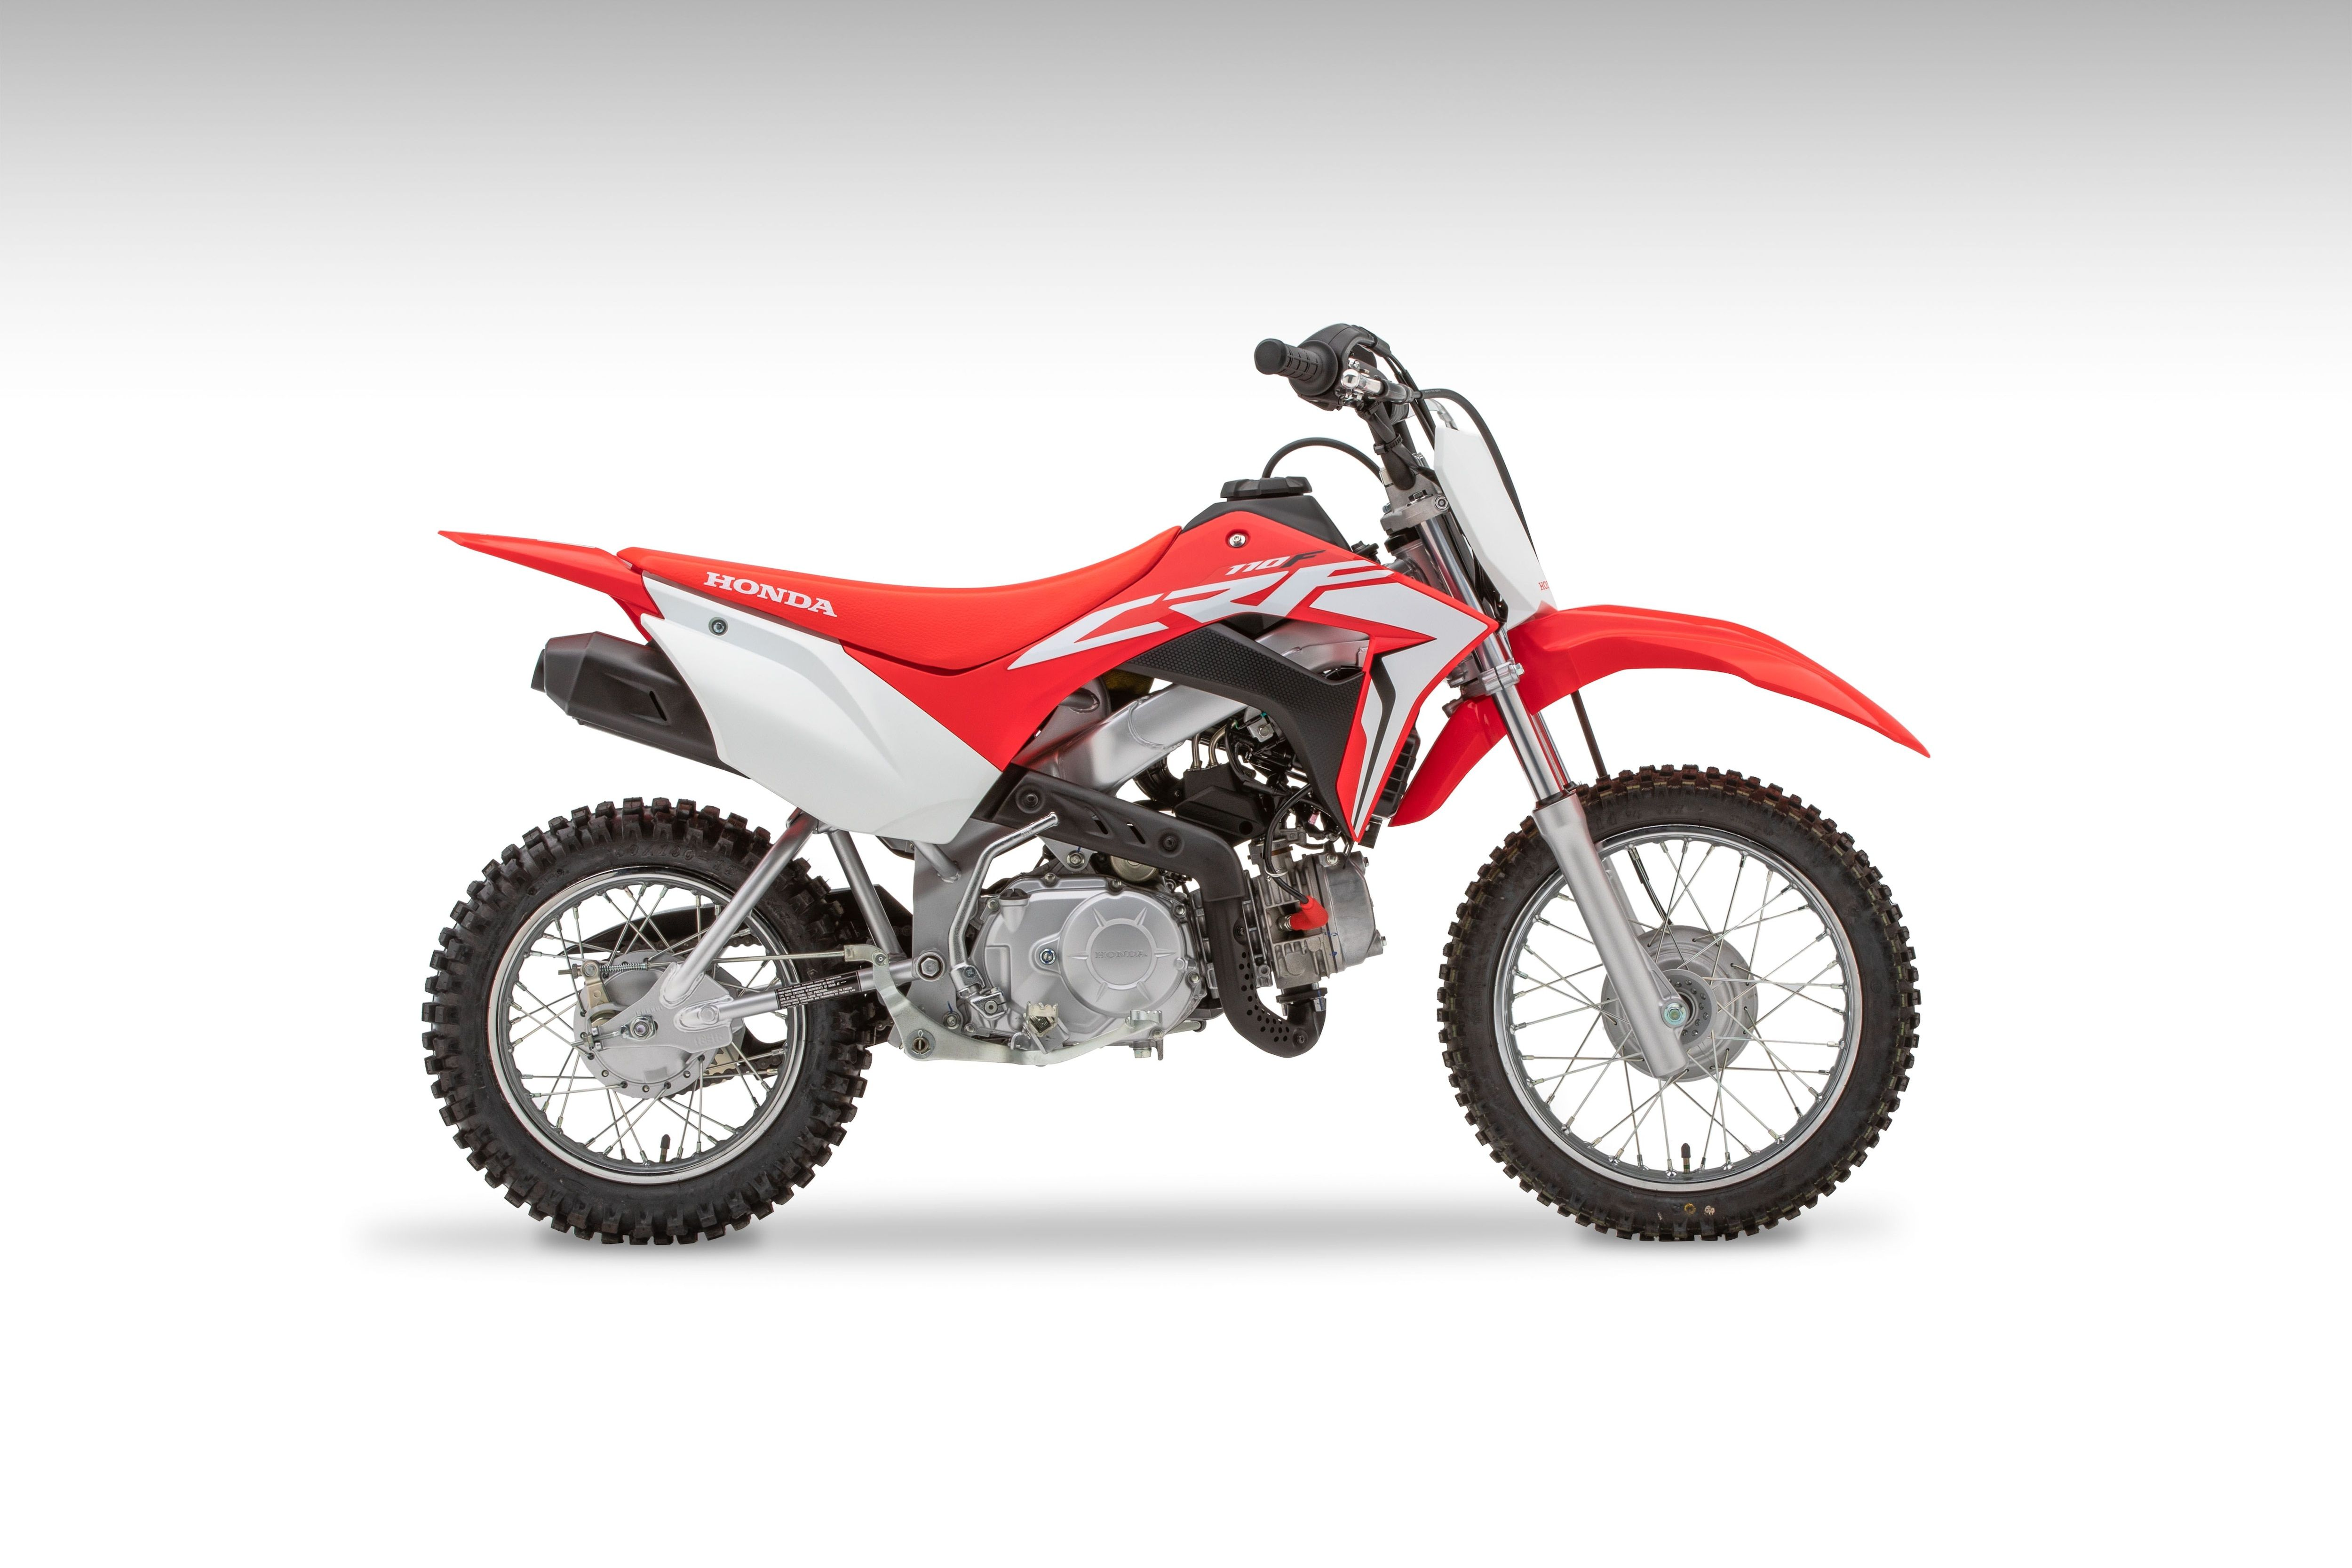 2020 Honda Crf110f 2020 Honda Crf110f Honda The Honda Crf110f Hit The Market In 2013 As The Second Smallest Trail In 2020 Pit Bike 110 Pit Bike Cool Dirt Bikes